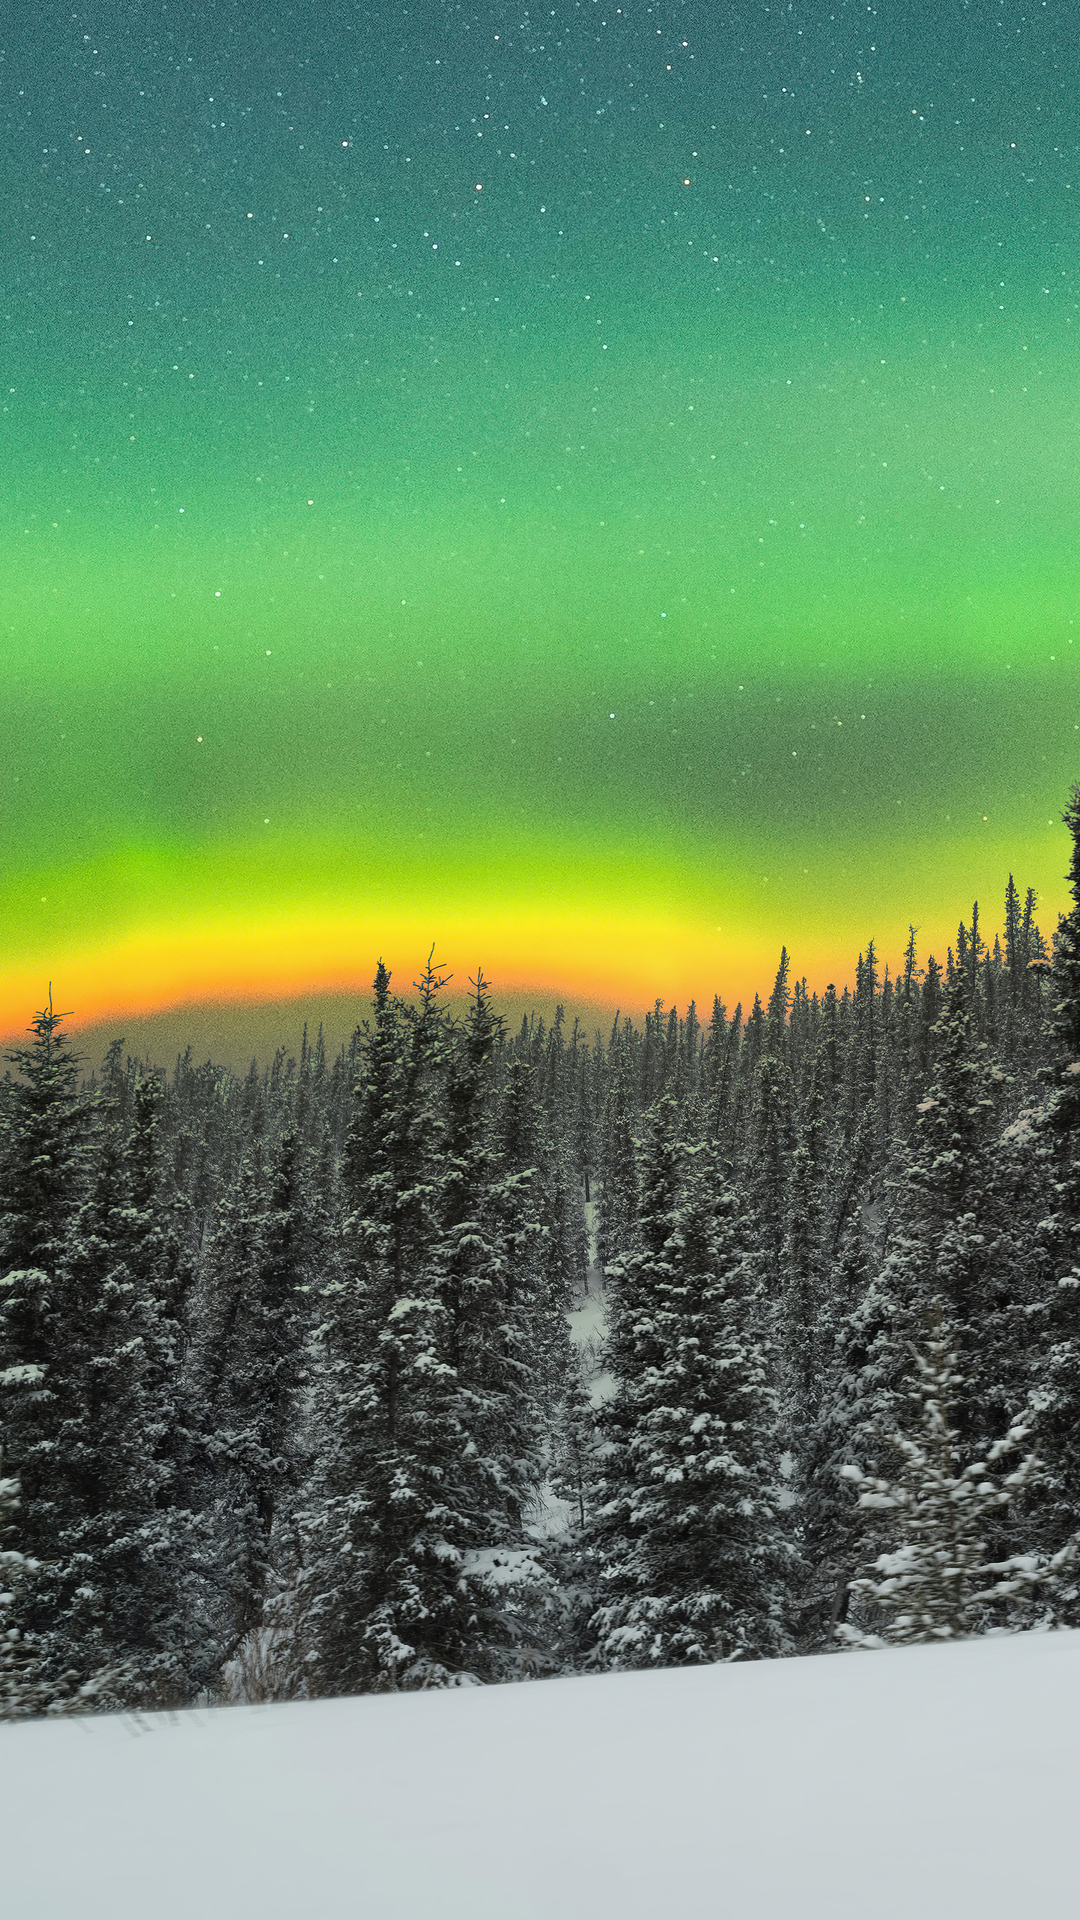 rare-orange-aurora-above-a-snowy-forest-5k-x0.jpg